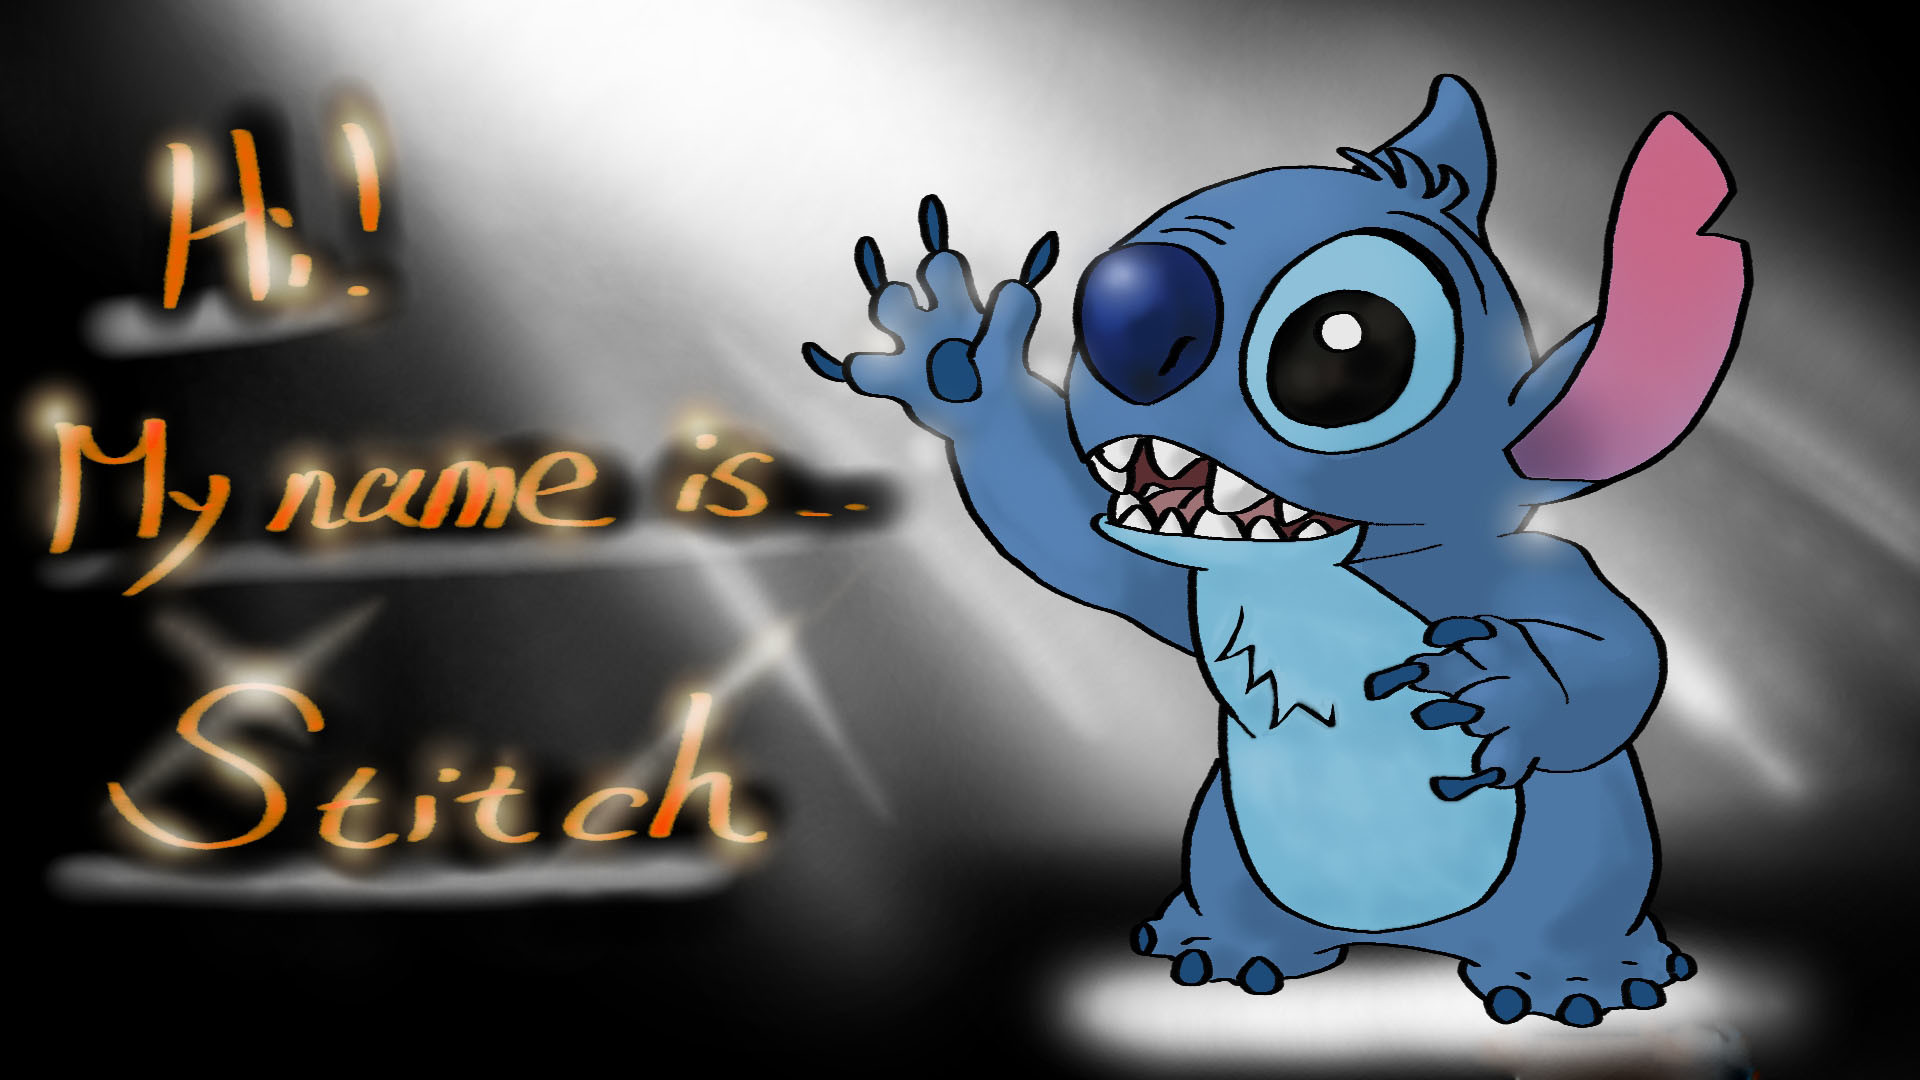 Lilo Stitch Cartoons Wallpapers Lilo And Stitch Wallpaper Wallpapers)